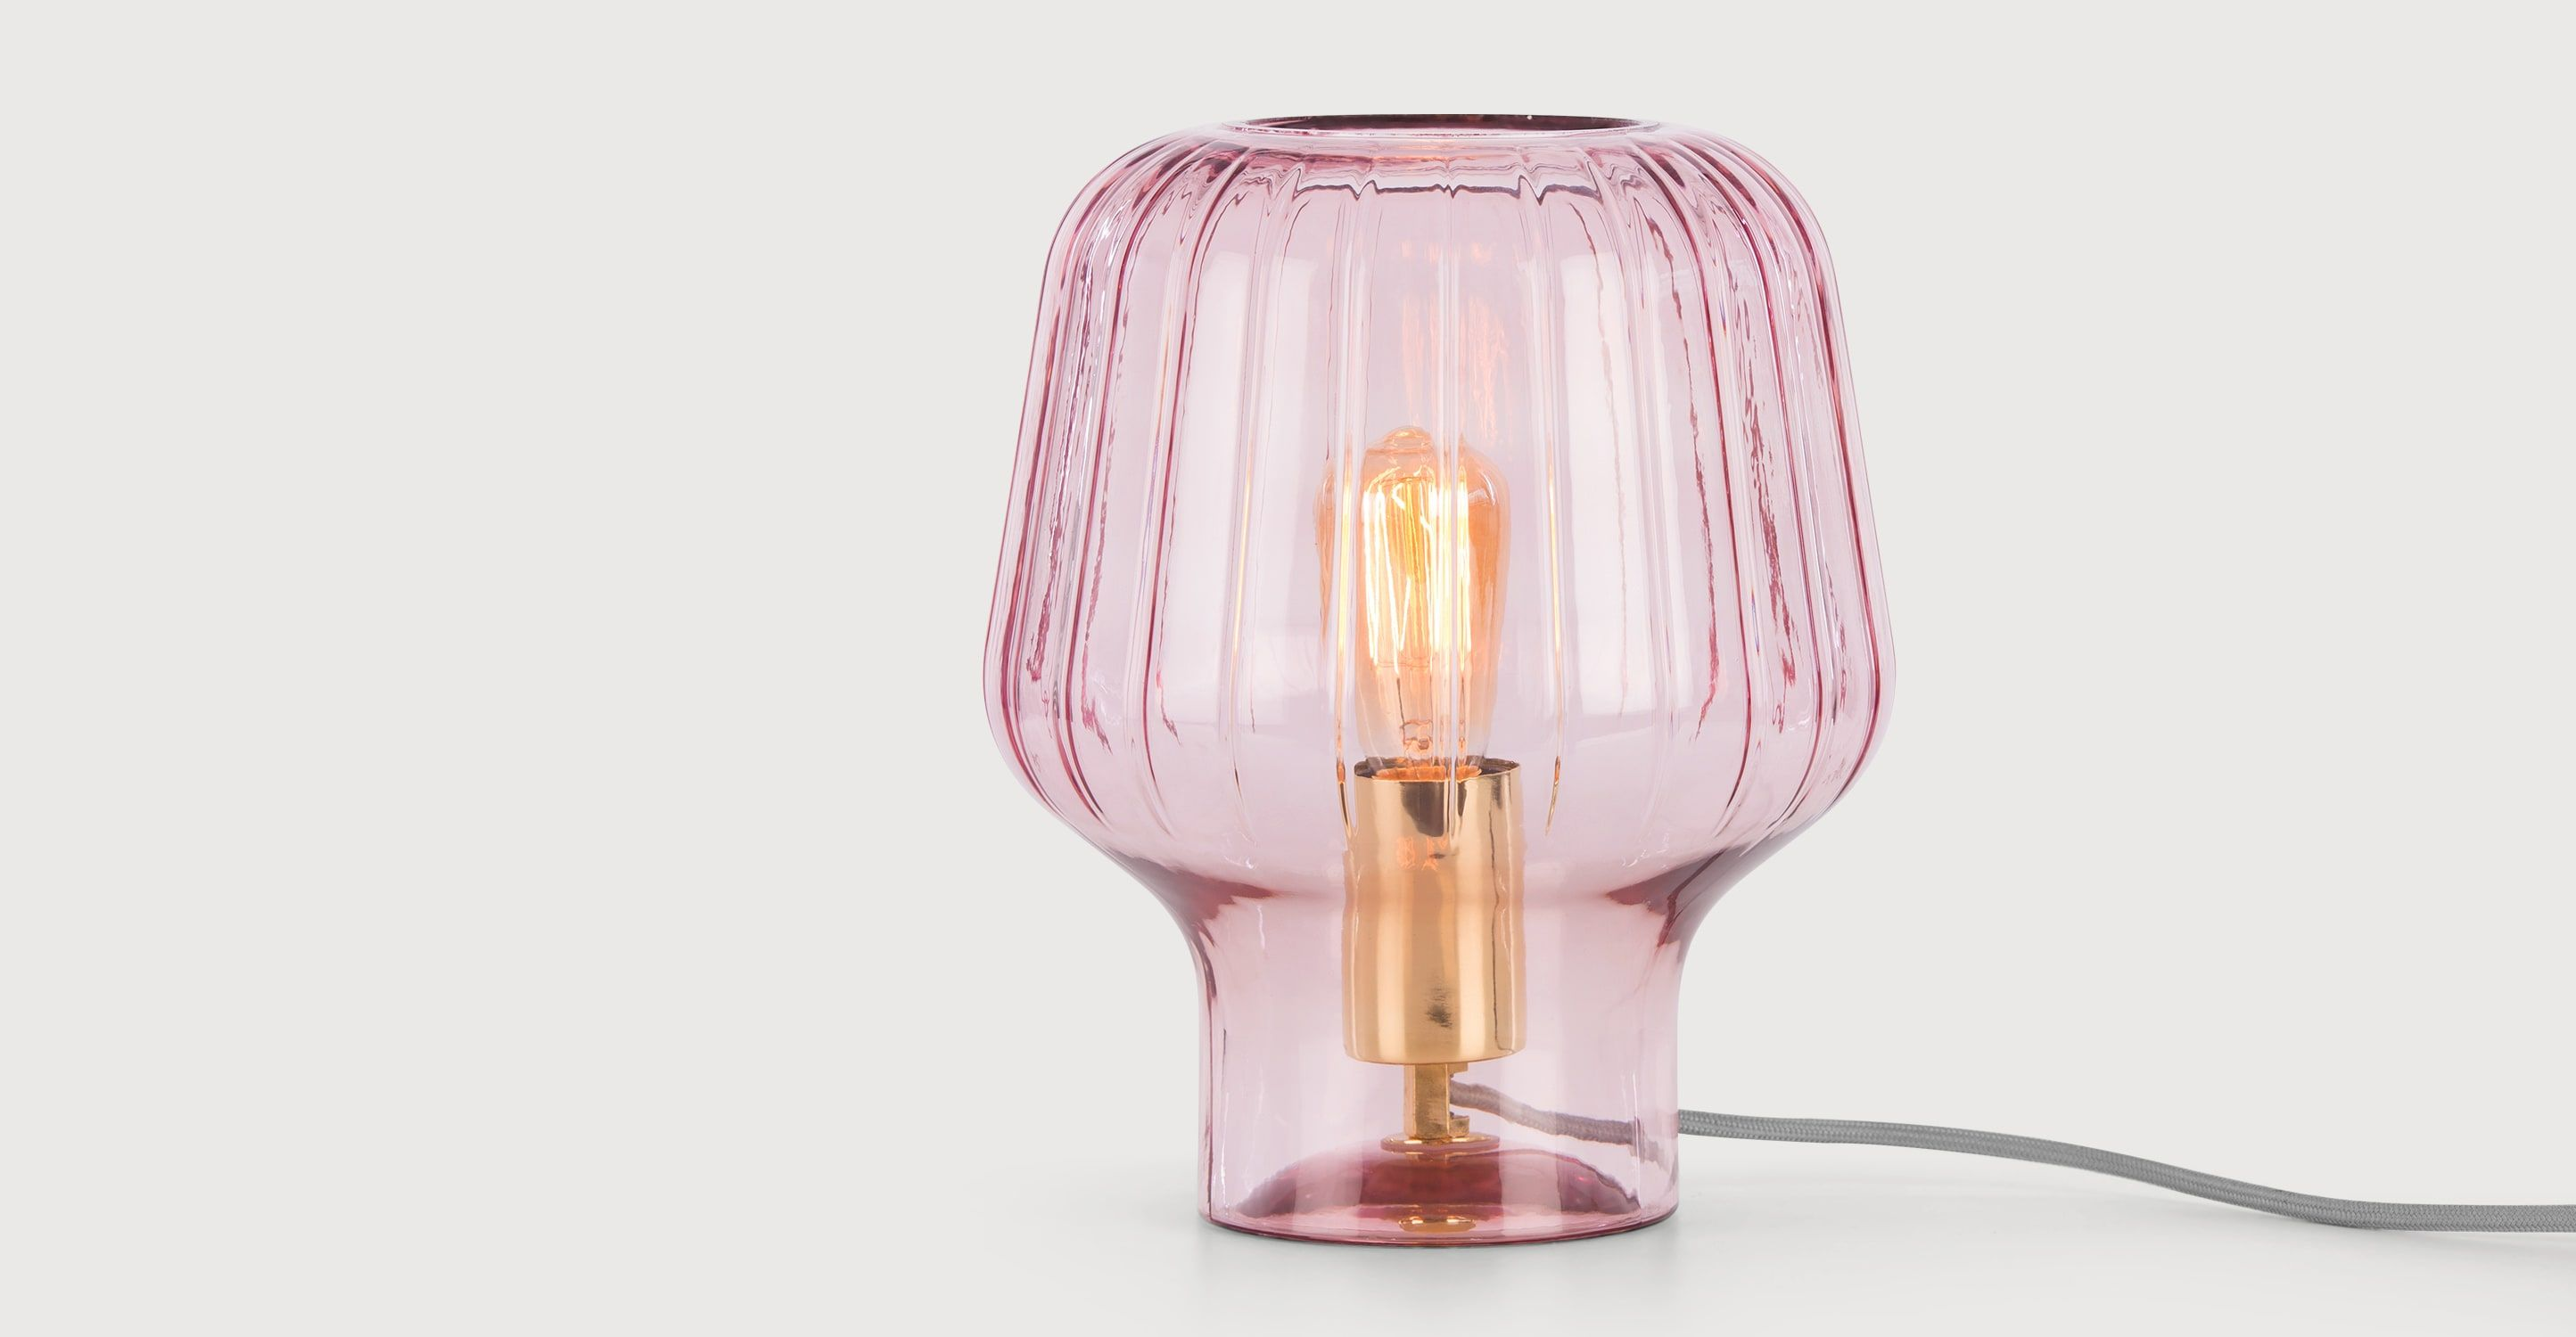 Slaapkamer Lamp Roze : Made table lamp blush pink glass & polished brass. now on sale